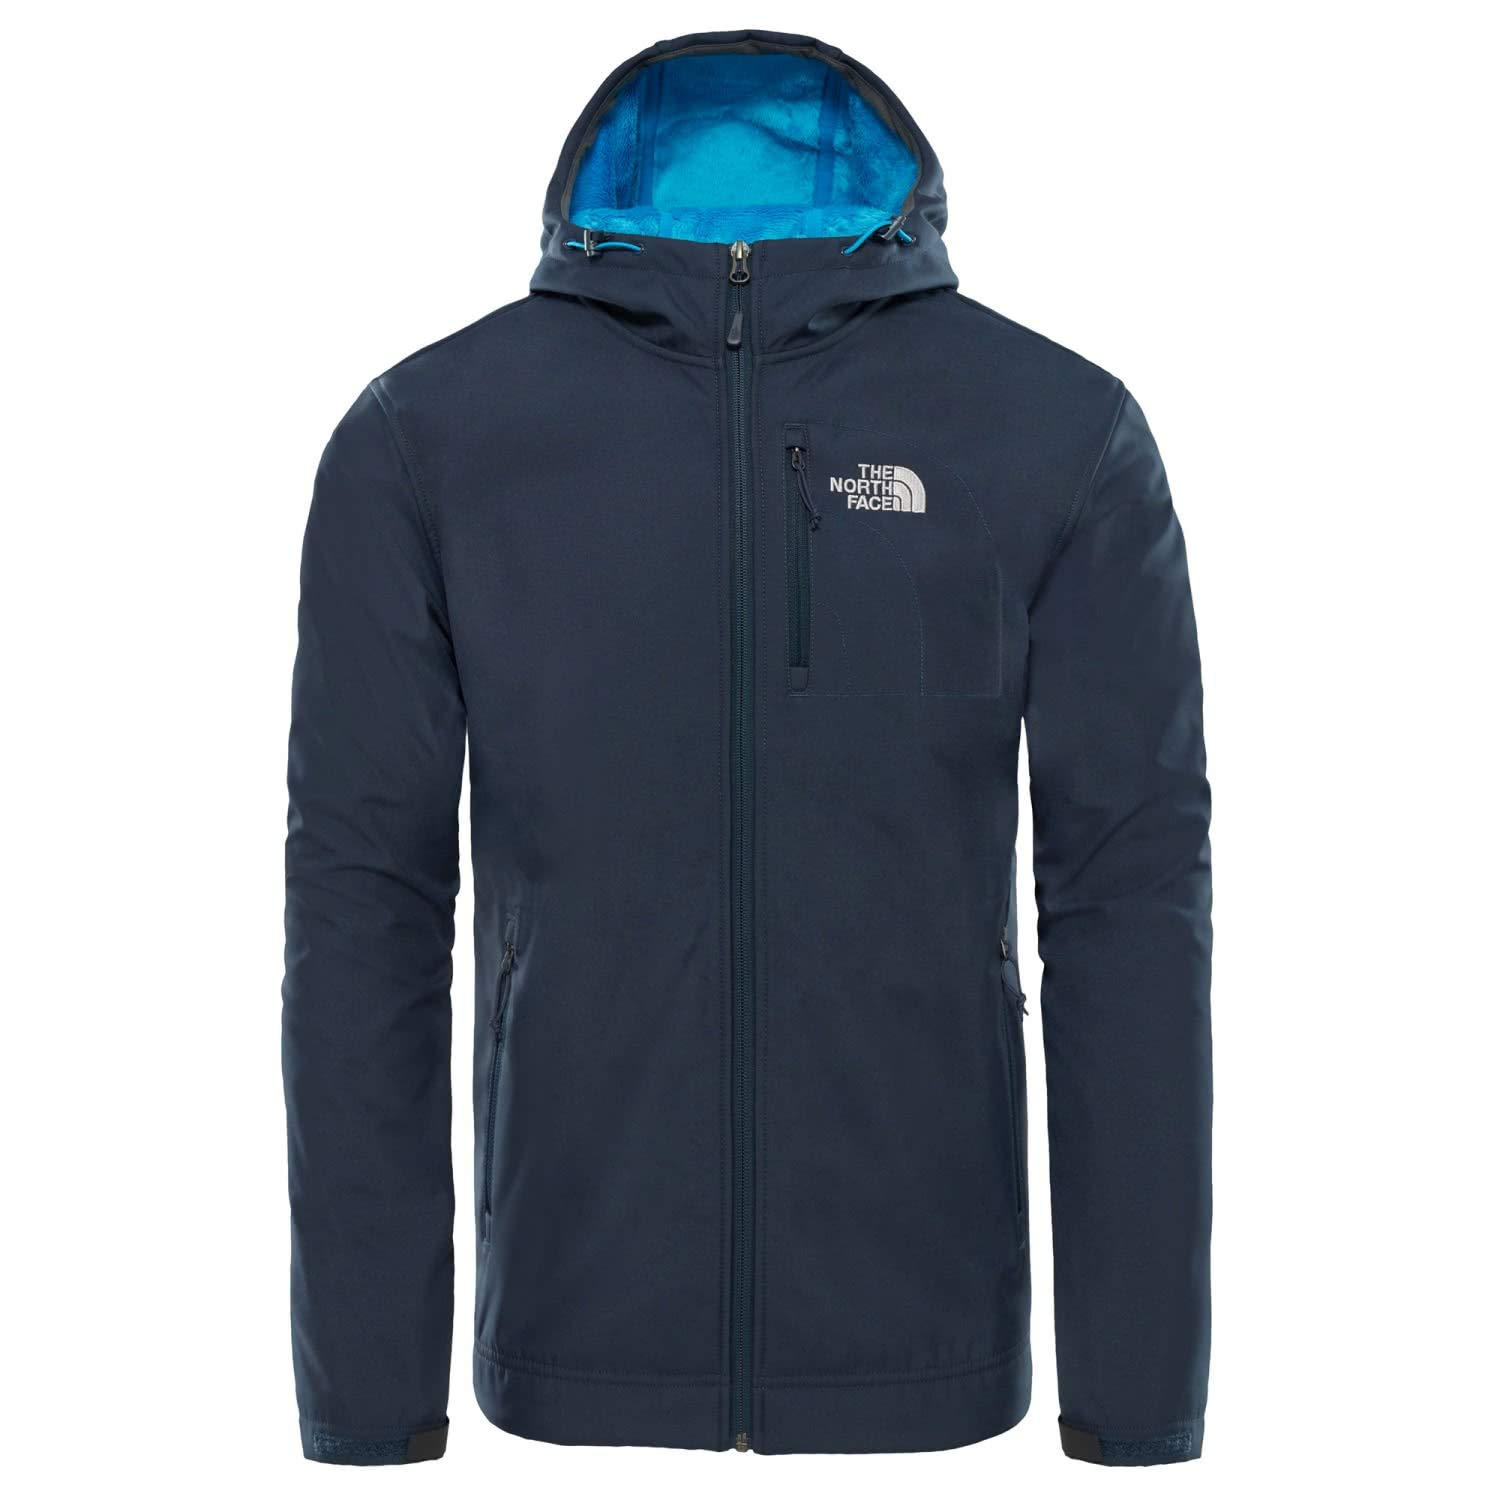 TALLA S. The North Face Durango - Chaqueta Hombre - Azul 2018